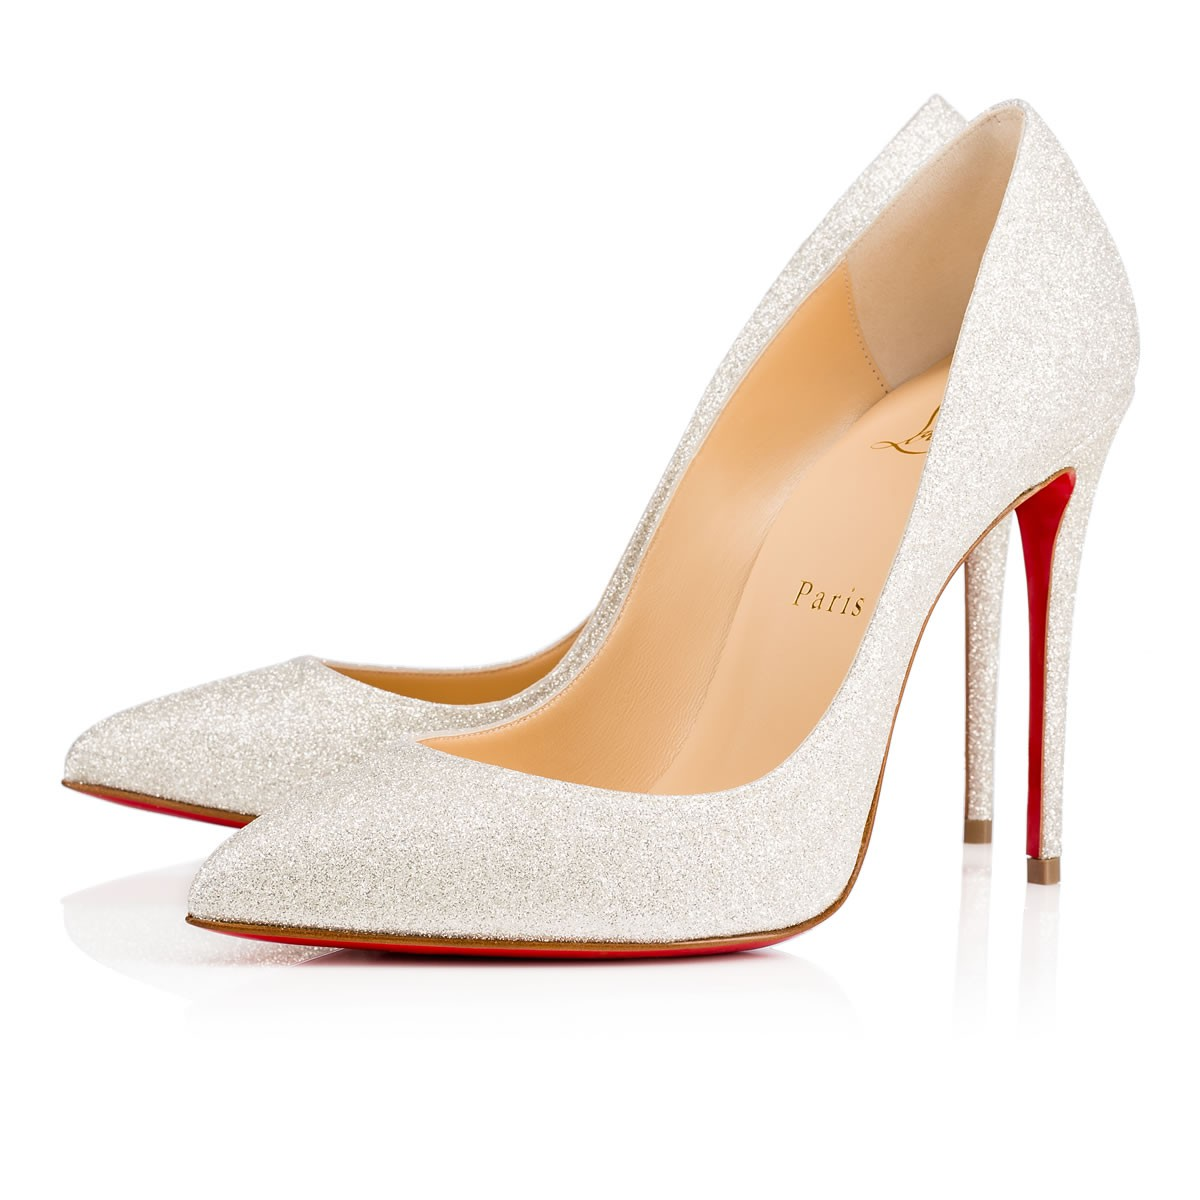 huge inventory 966d6 3969f Pigalle Follies 100 Ivory Glitter Mini - Women Shoes - Christian Louboutin